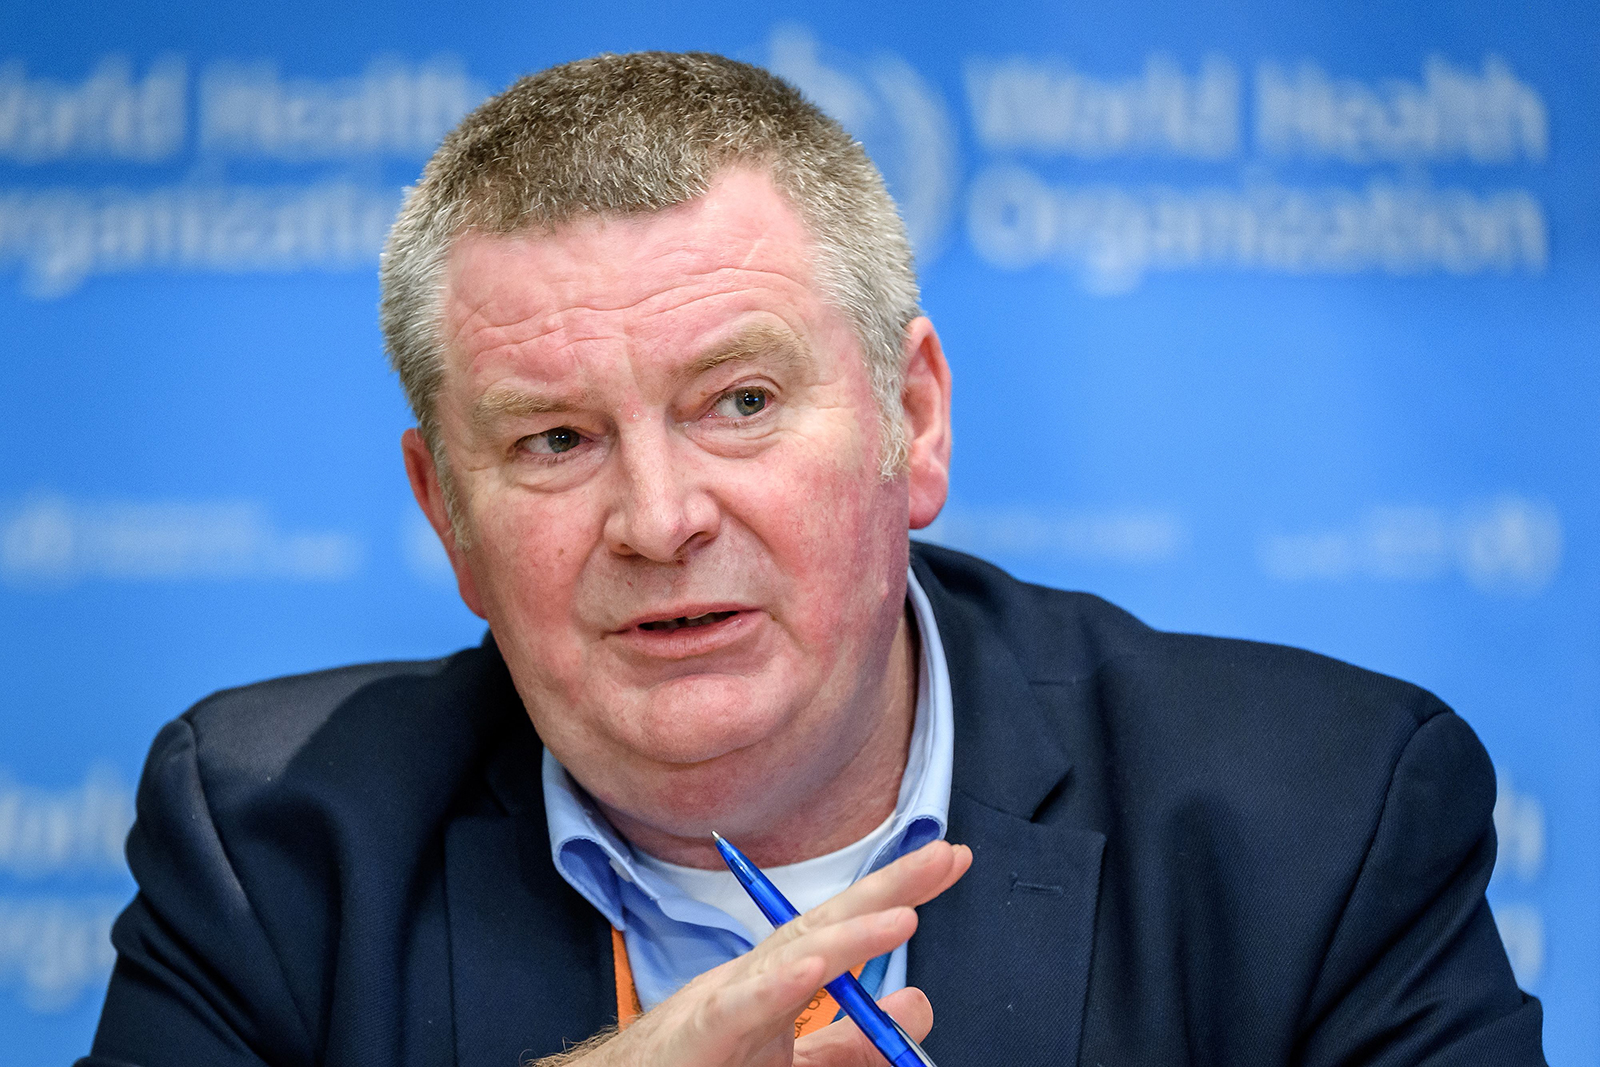 World Health Organization health emergencies program executive director Michael Ryan talks during a press briefing at the WHO headquarters in Geneva on March 11.